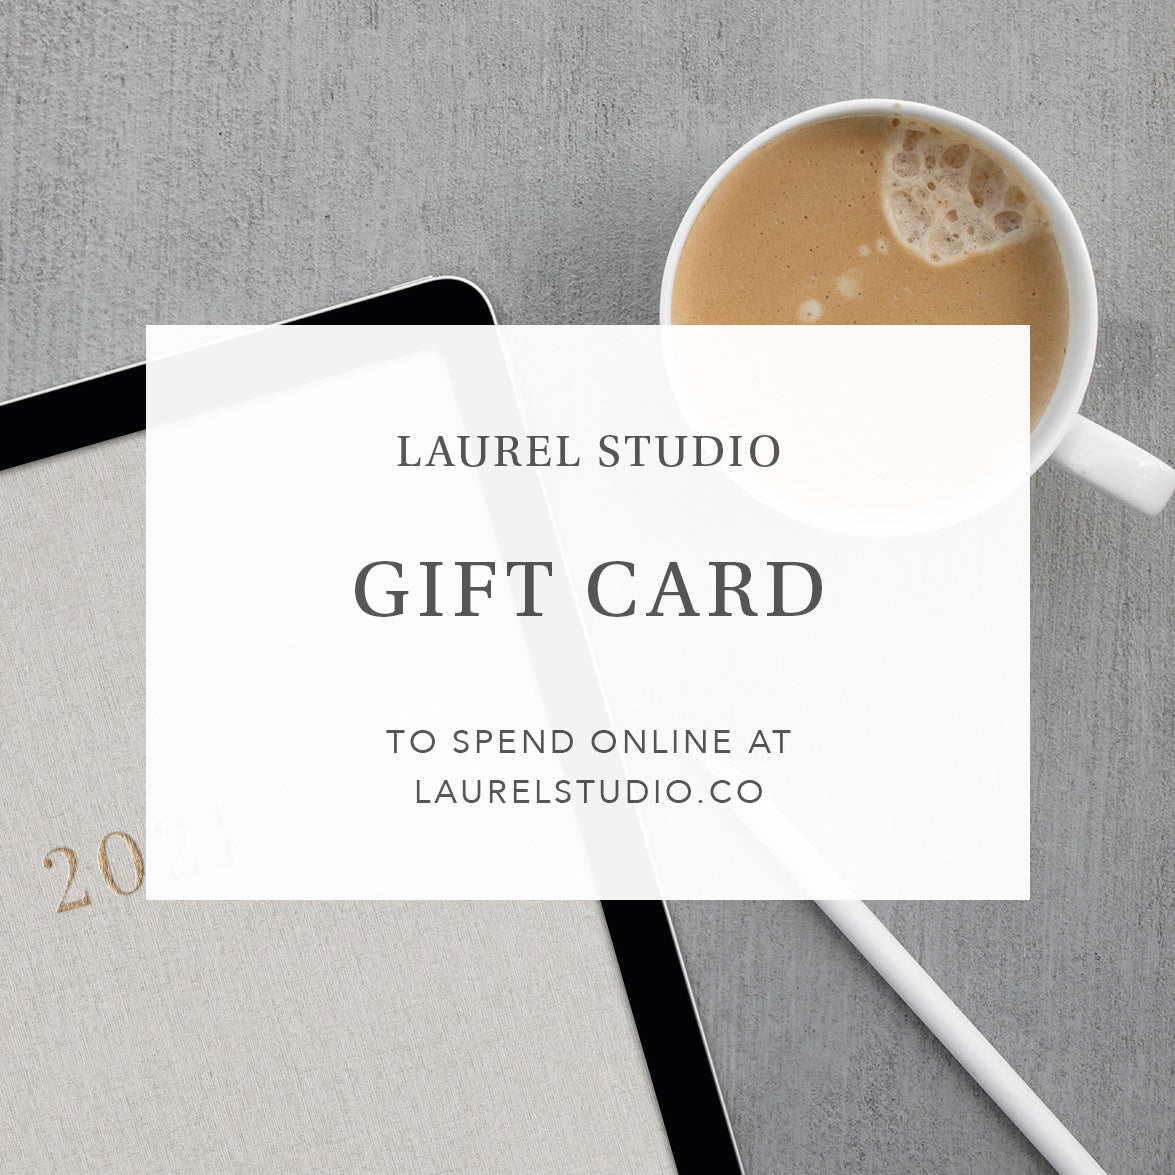 Laurel Studio Gift Card